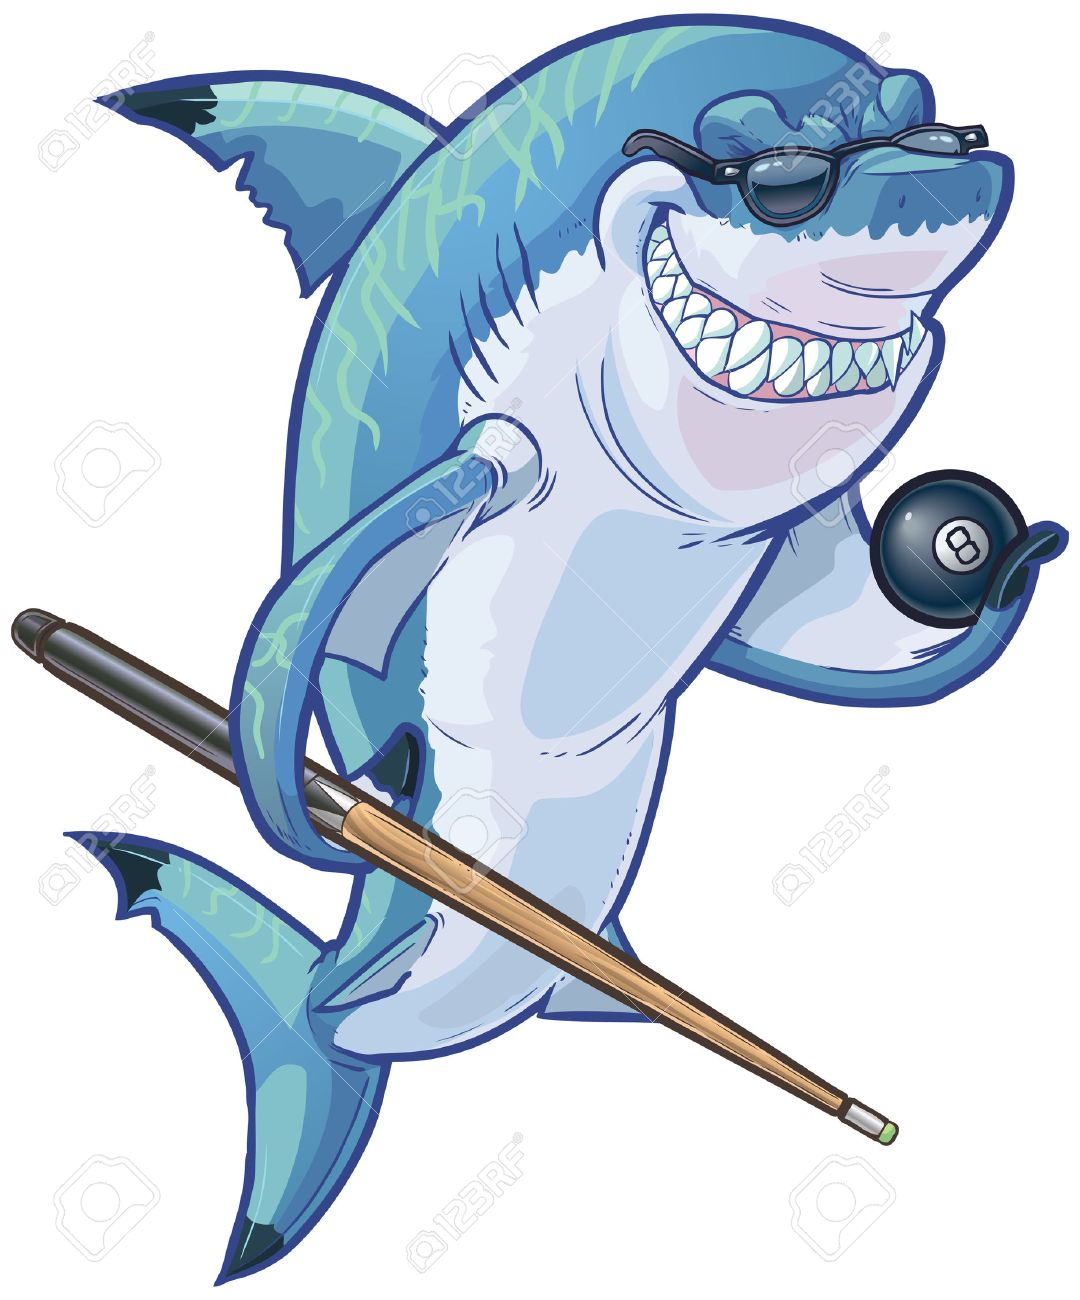 Vector cartoon clip art illustration of a tough mean smiling shark mascot wearing sunglasses and holding an eight ball and pool cue. Accessories are on a separate layer in the vector file. Banque d'images - 40904187